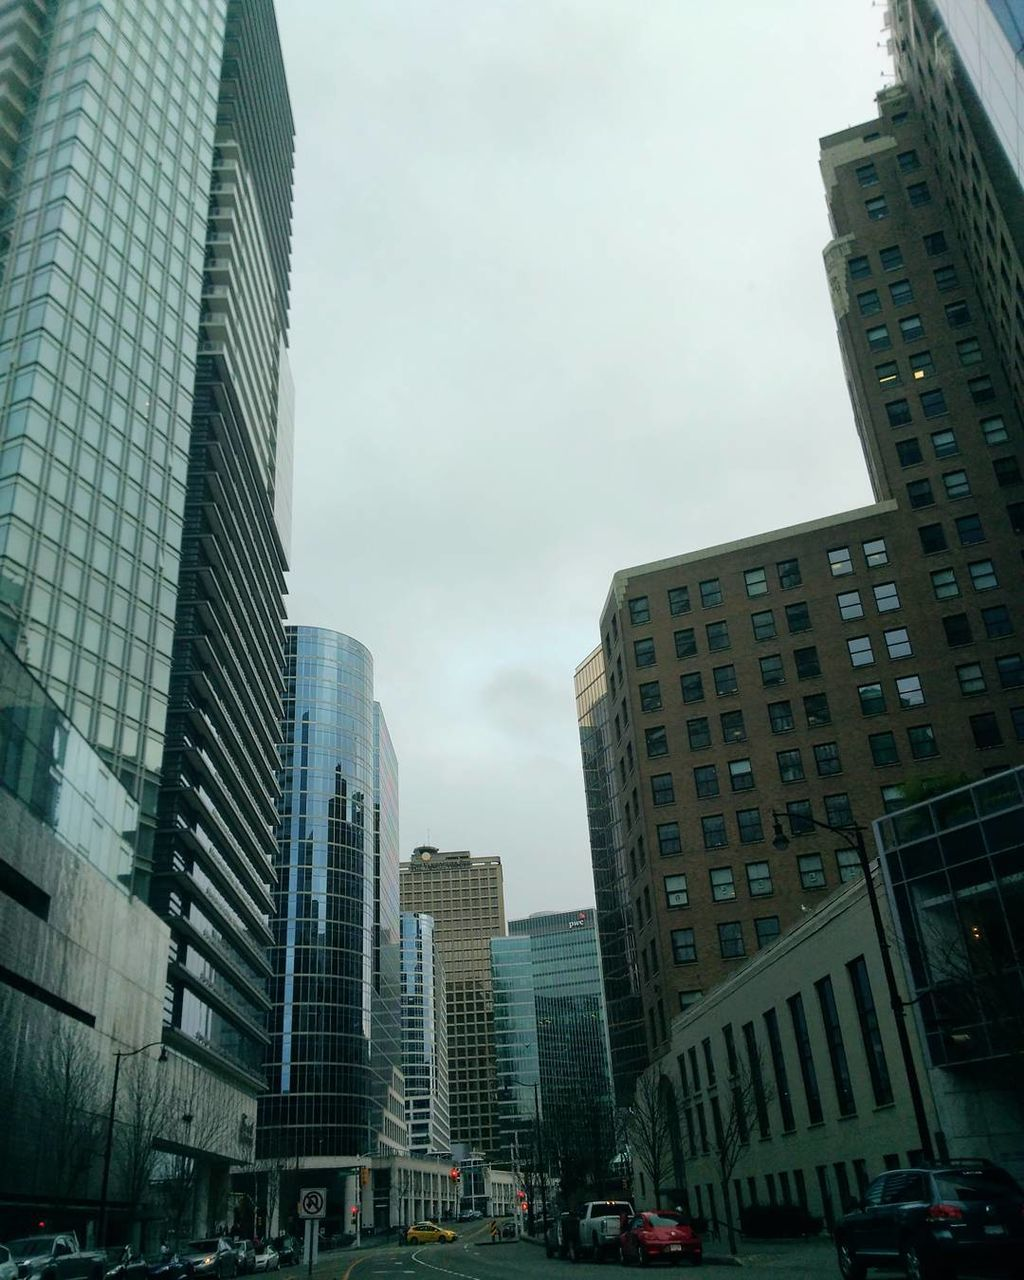 architecture, city, building exterior, skyscraper, built structure, modern, tall - high, city life, tower, low angle view, tall, downtown district, outdoors, cityscape, sky, day, travel destinations, growth, no people, office park